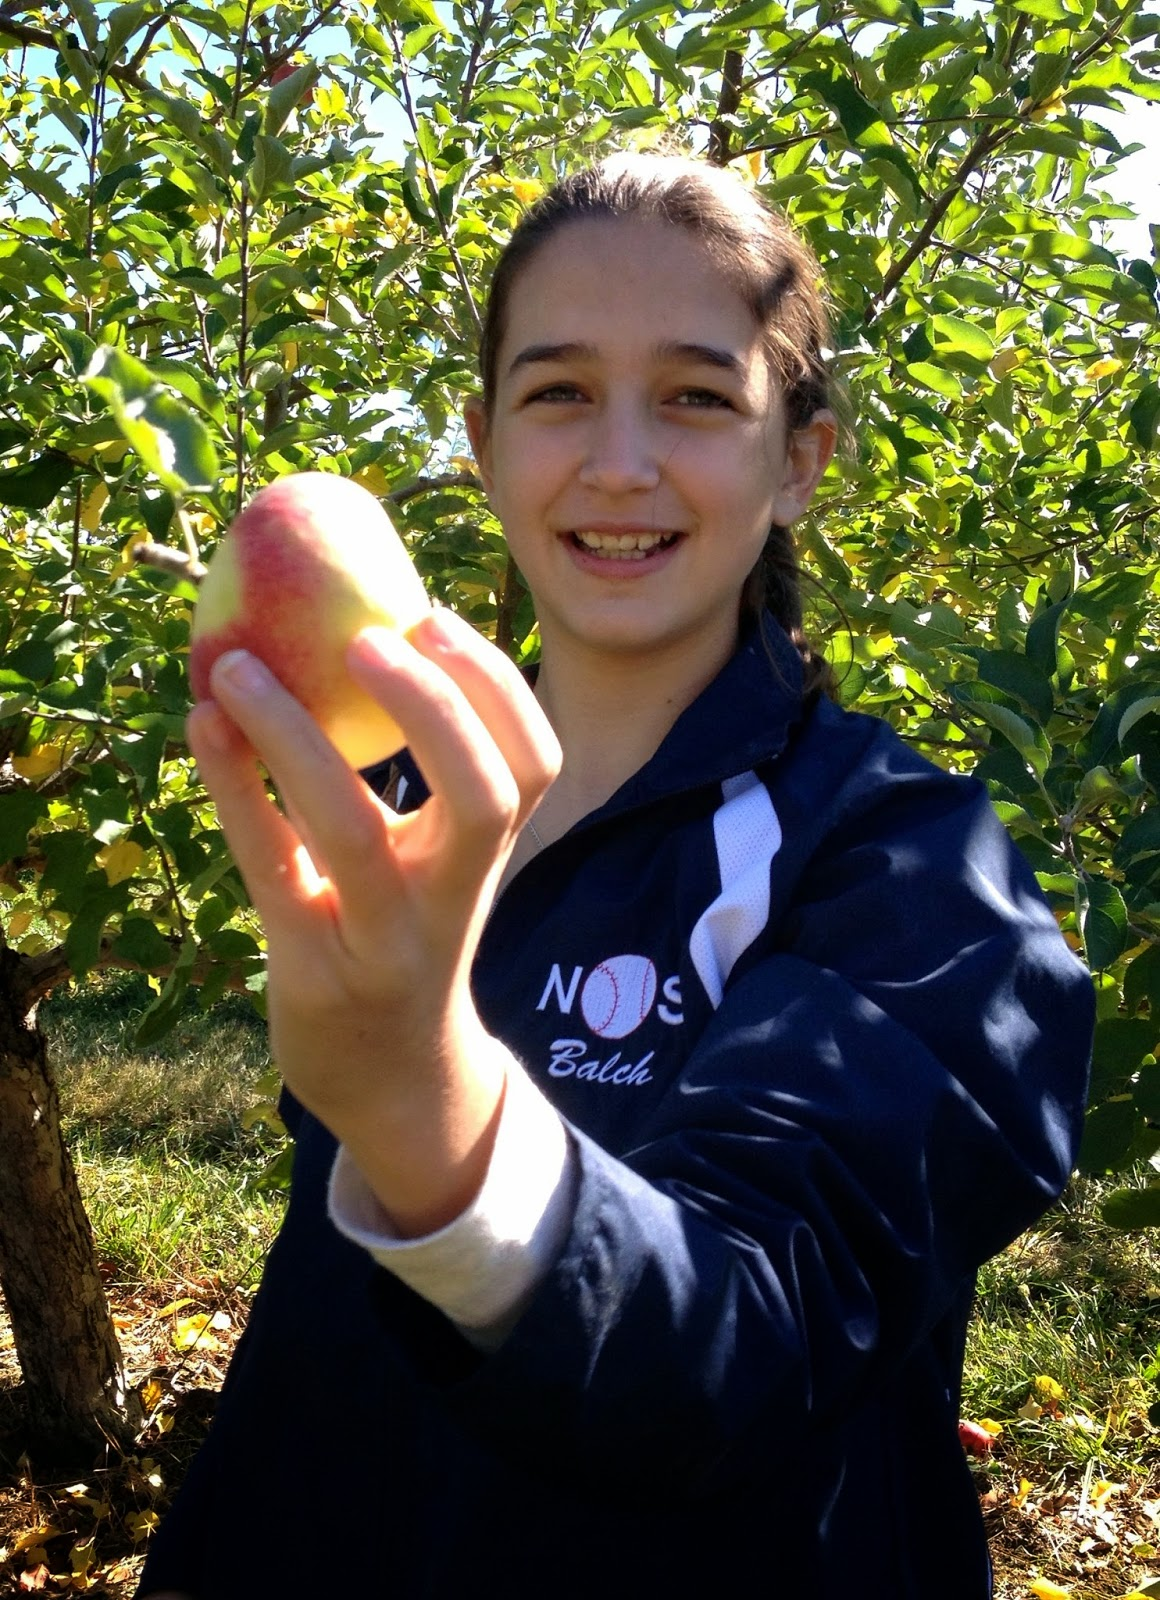 girl with apple: simplelivingeating.com